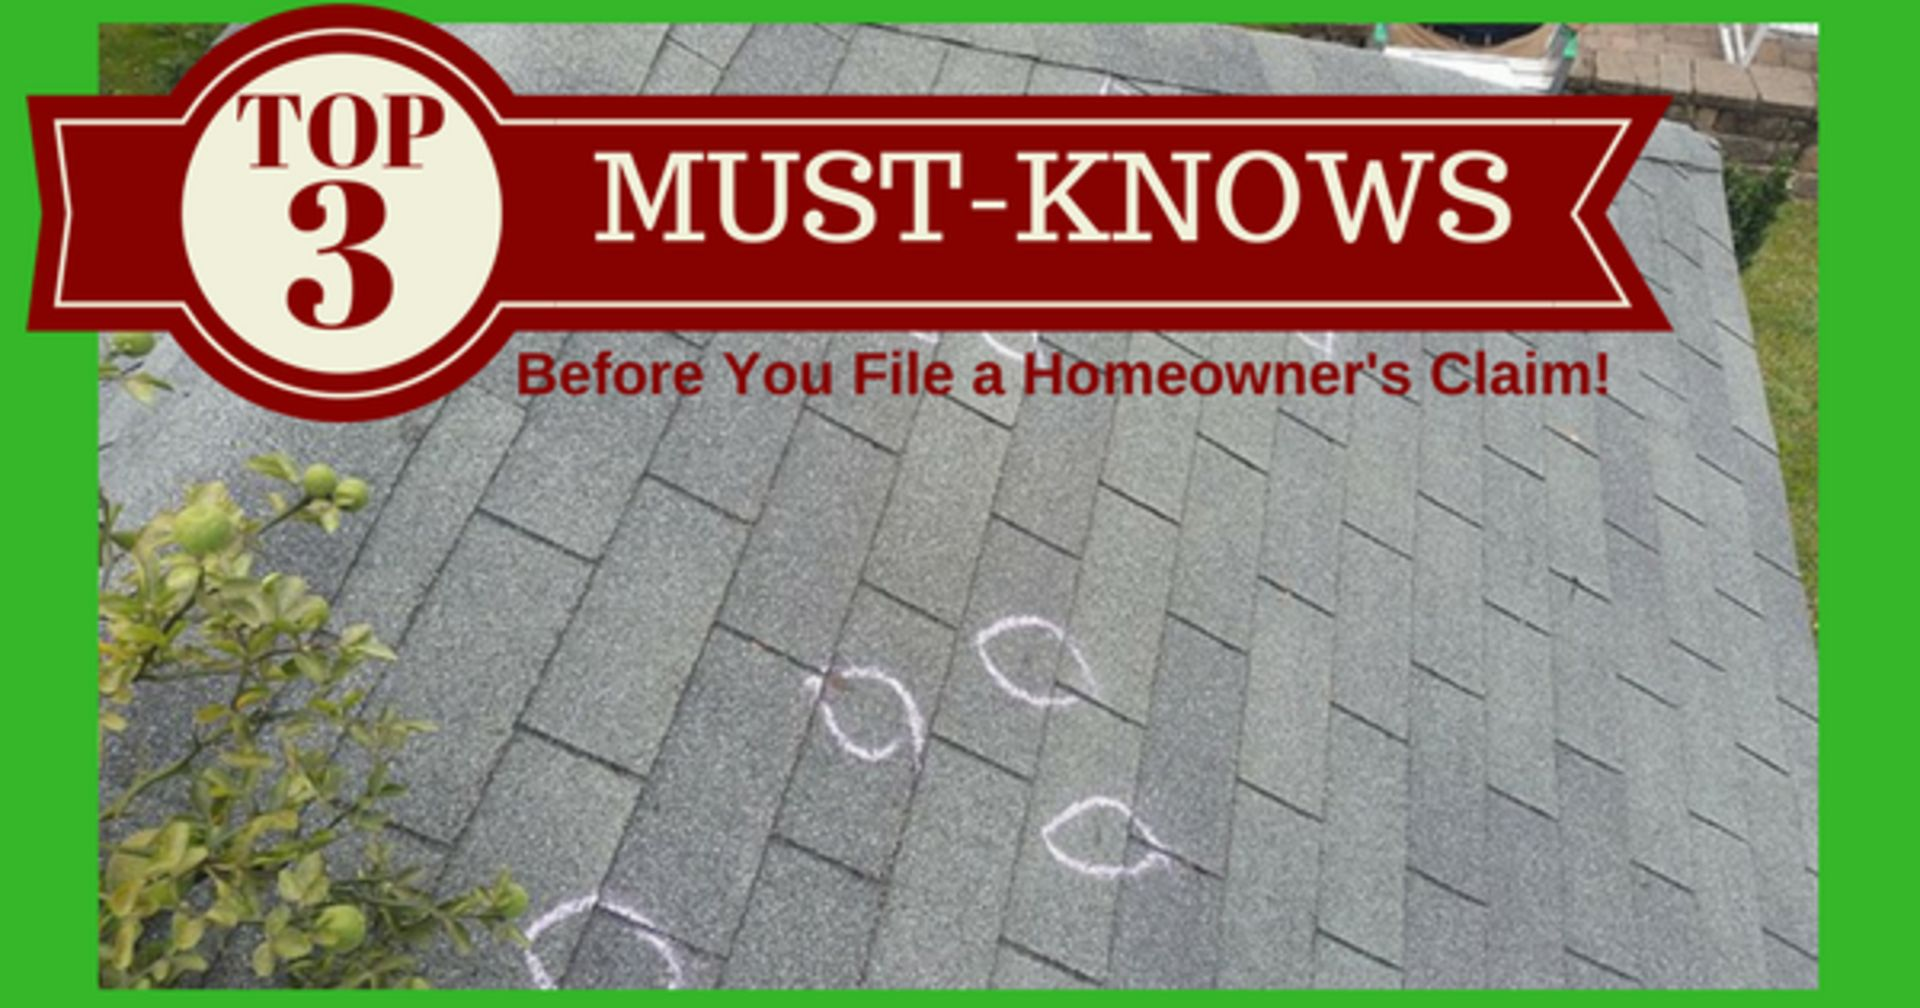 TOP 3 MUST-KNOWS Before You File a Homeowner's Claim